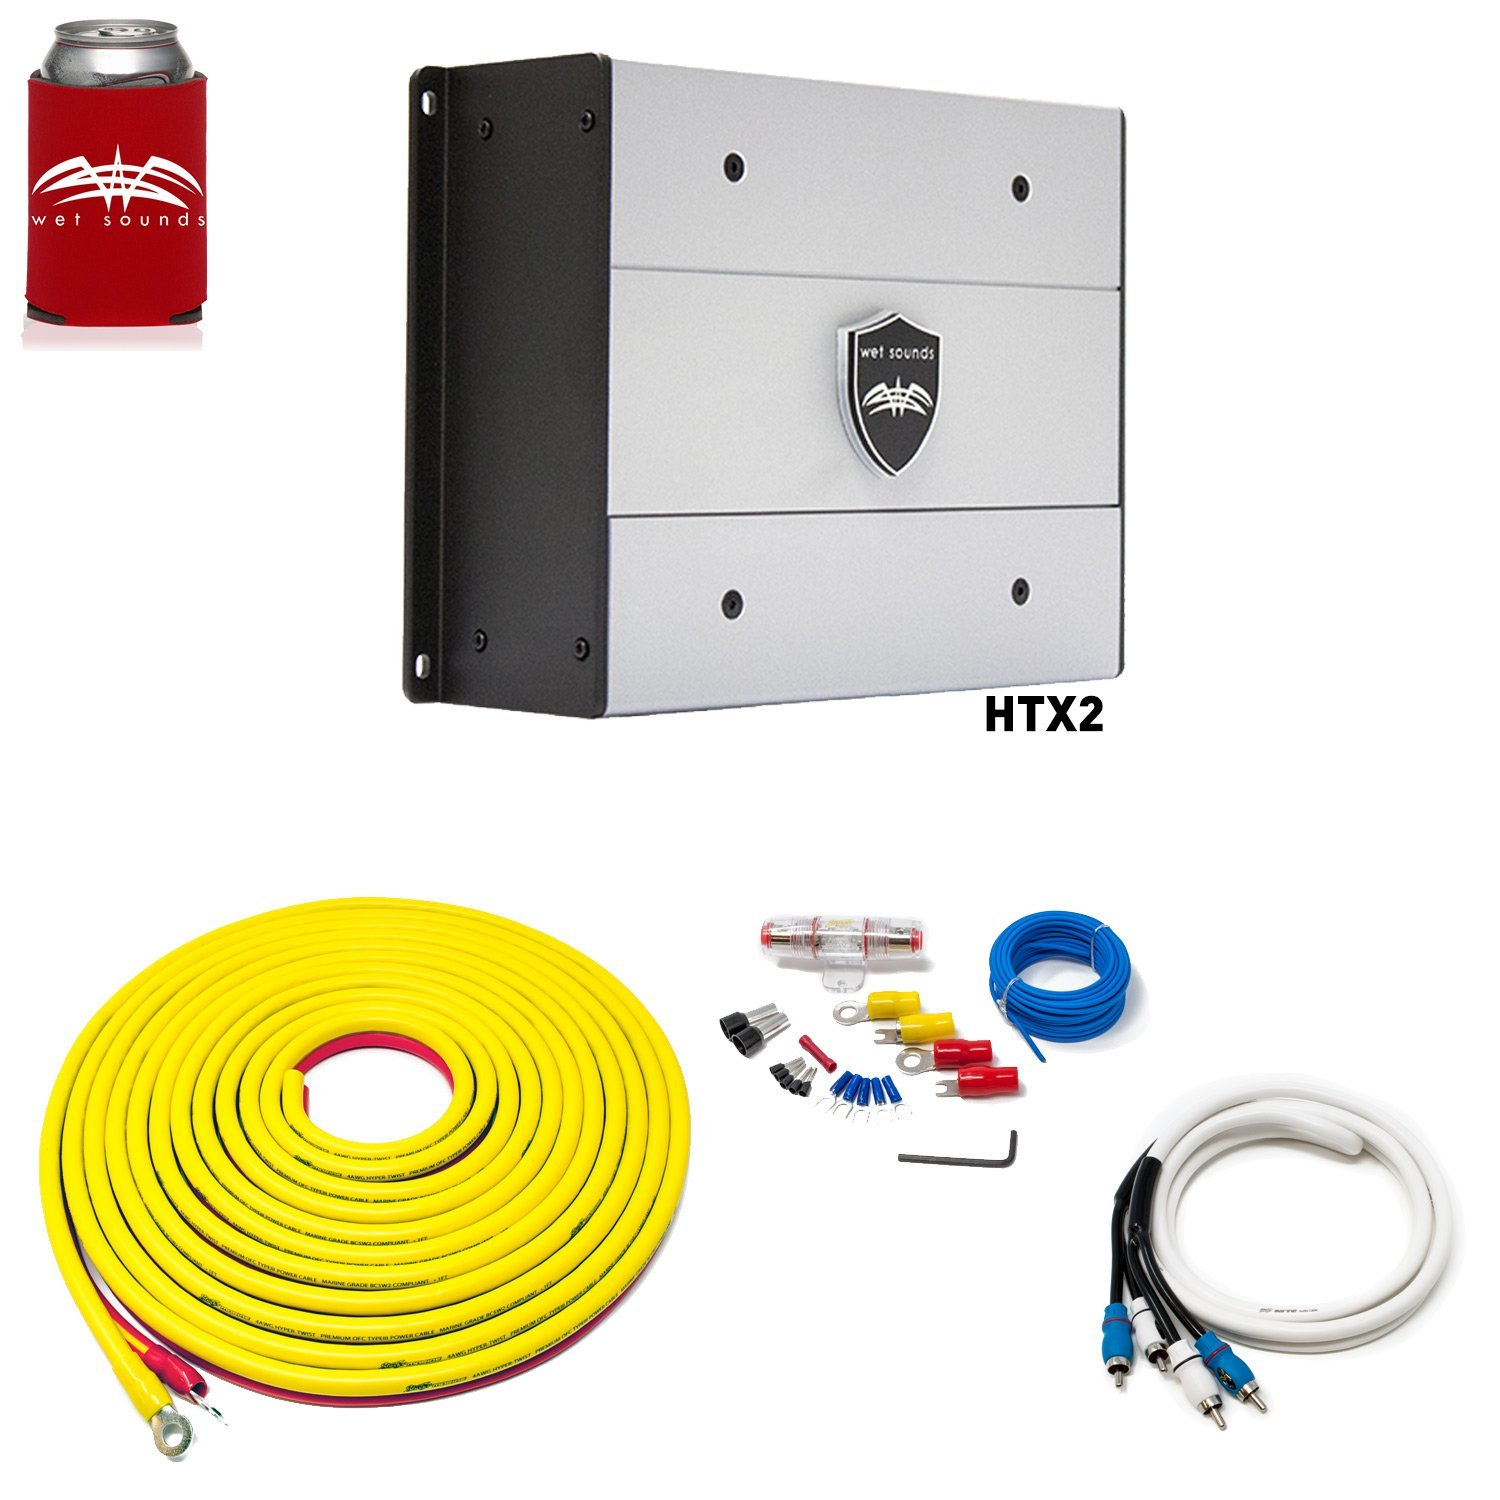 Peachy Stinger Wiring Kit Instructions Free Download Wiring Diagrams Wiring Cloud Hisonuggs Outletorg